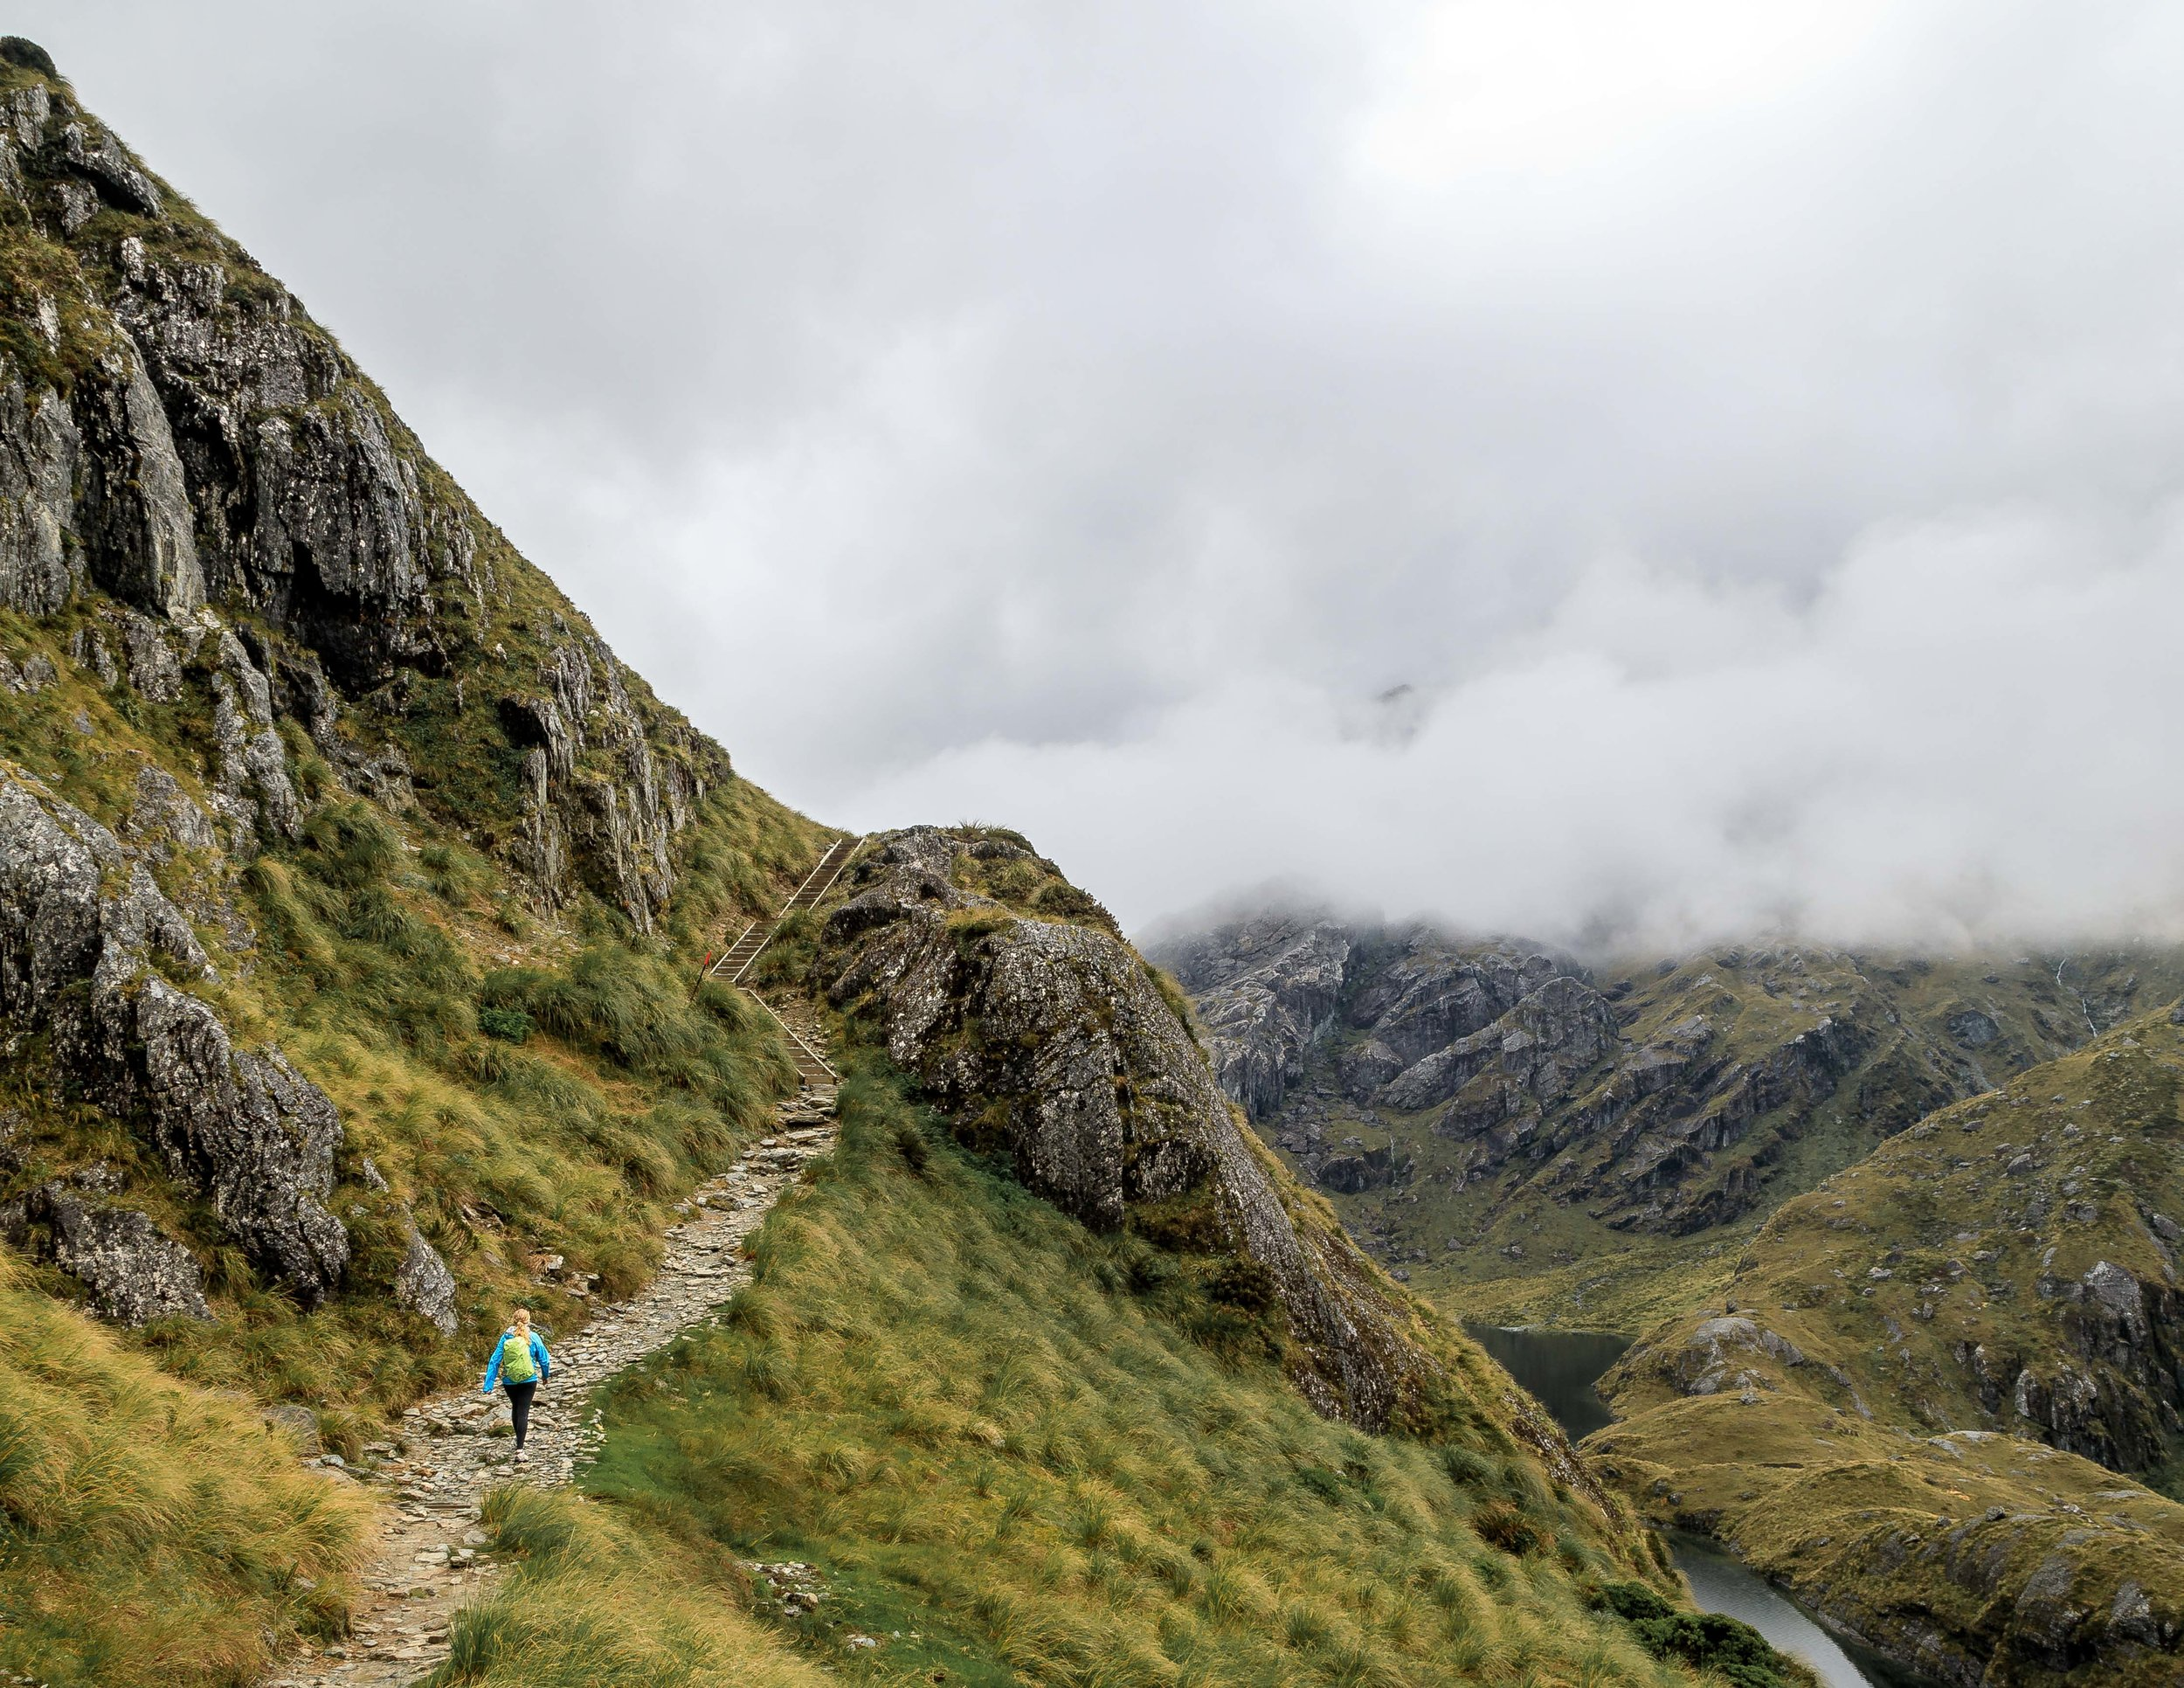 The path up to the top of Harris Saddle